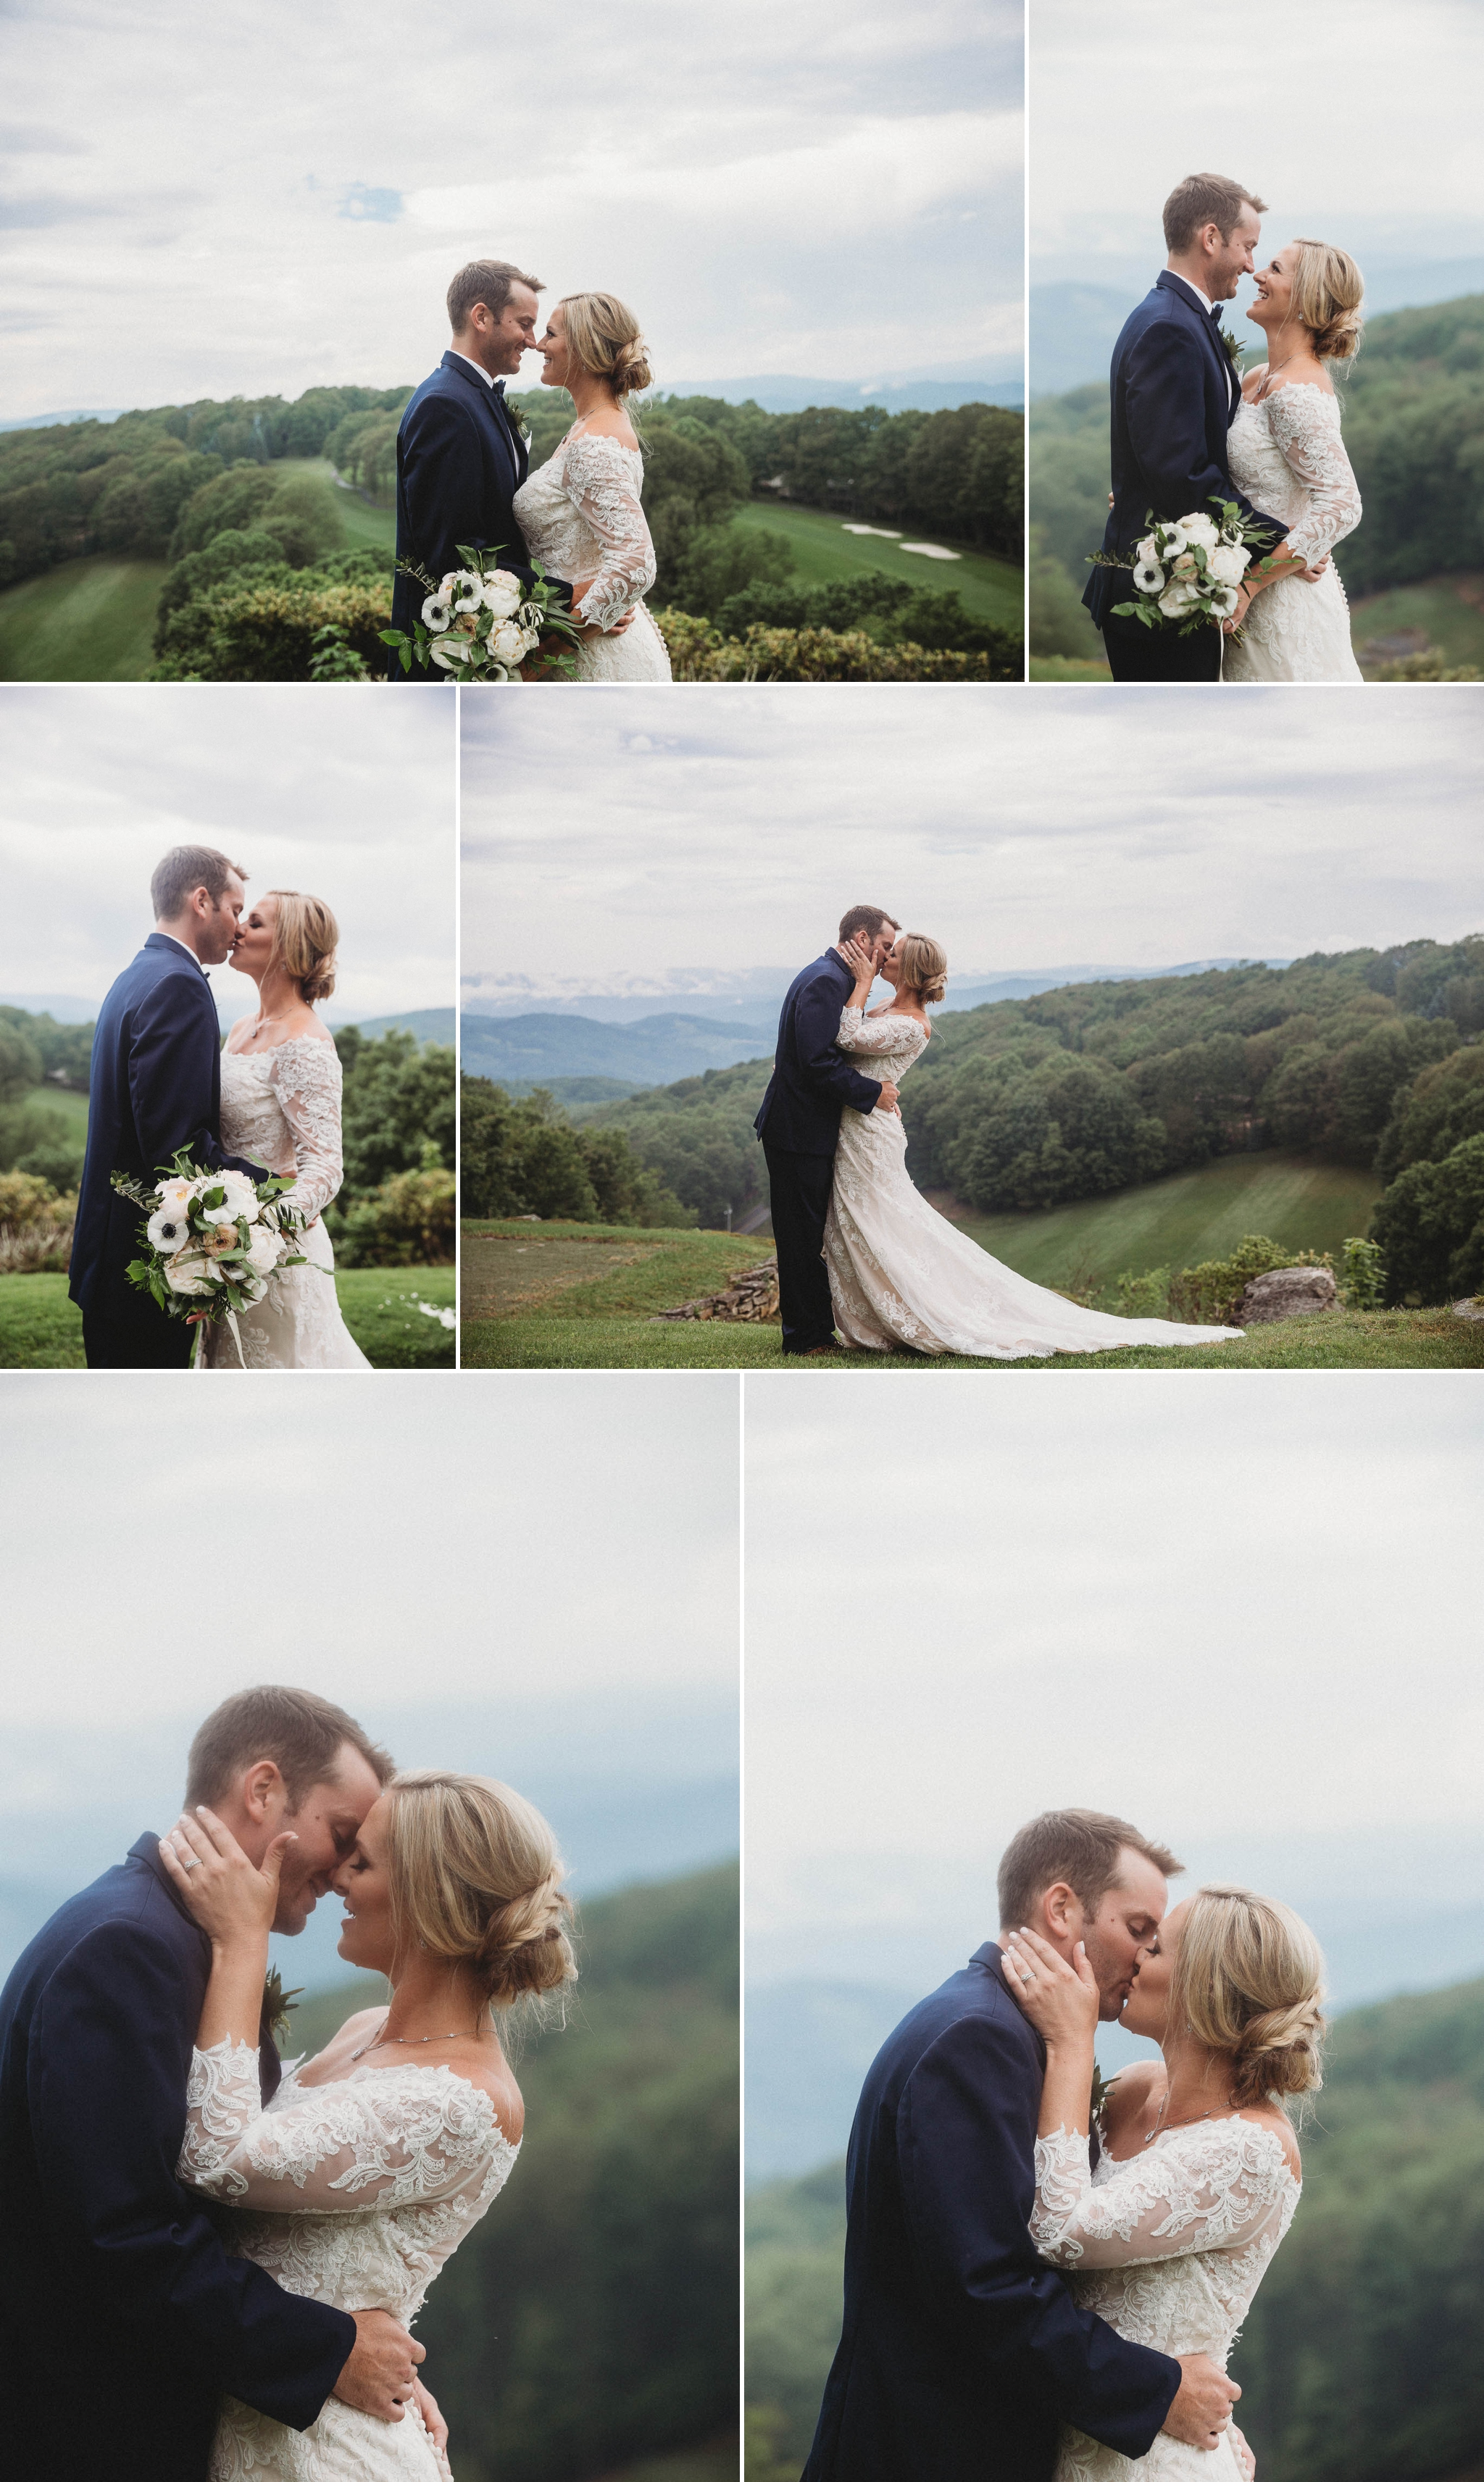 Portraits of Bride and Groom in the Mountains - Beech Mountain Club Wedding - Asheville North Carolina Photographer